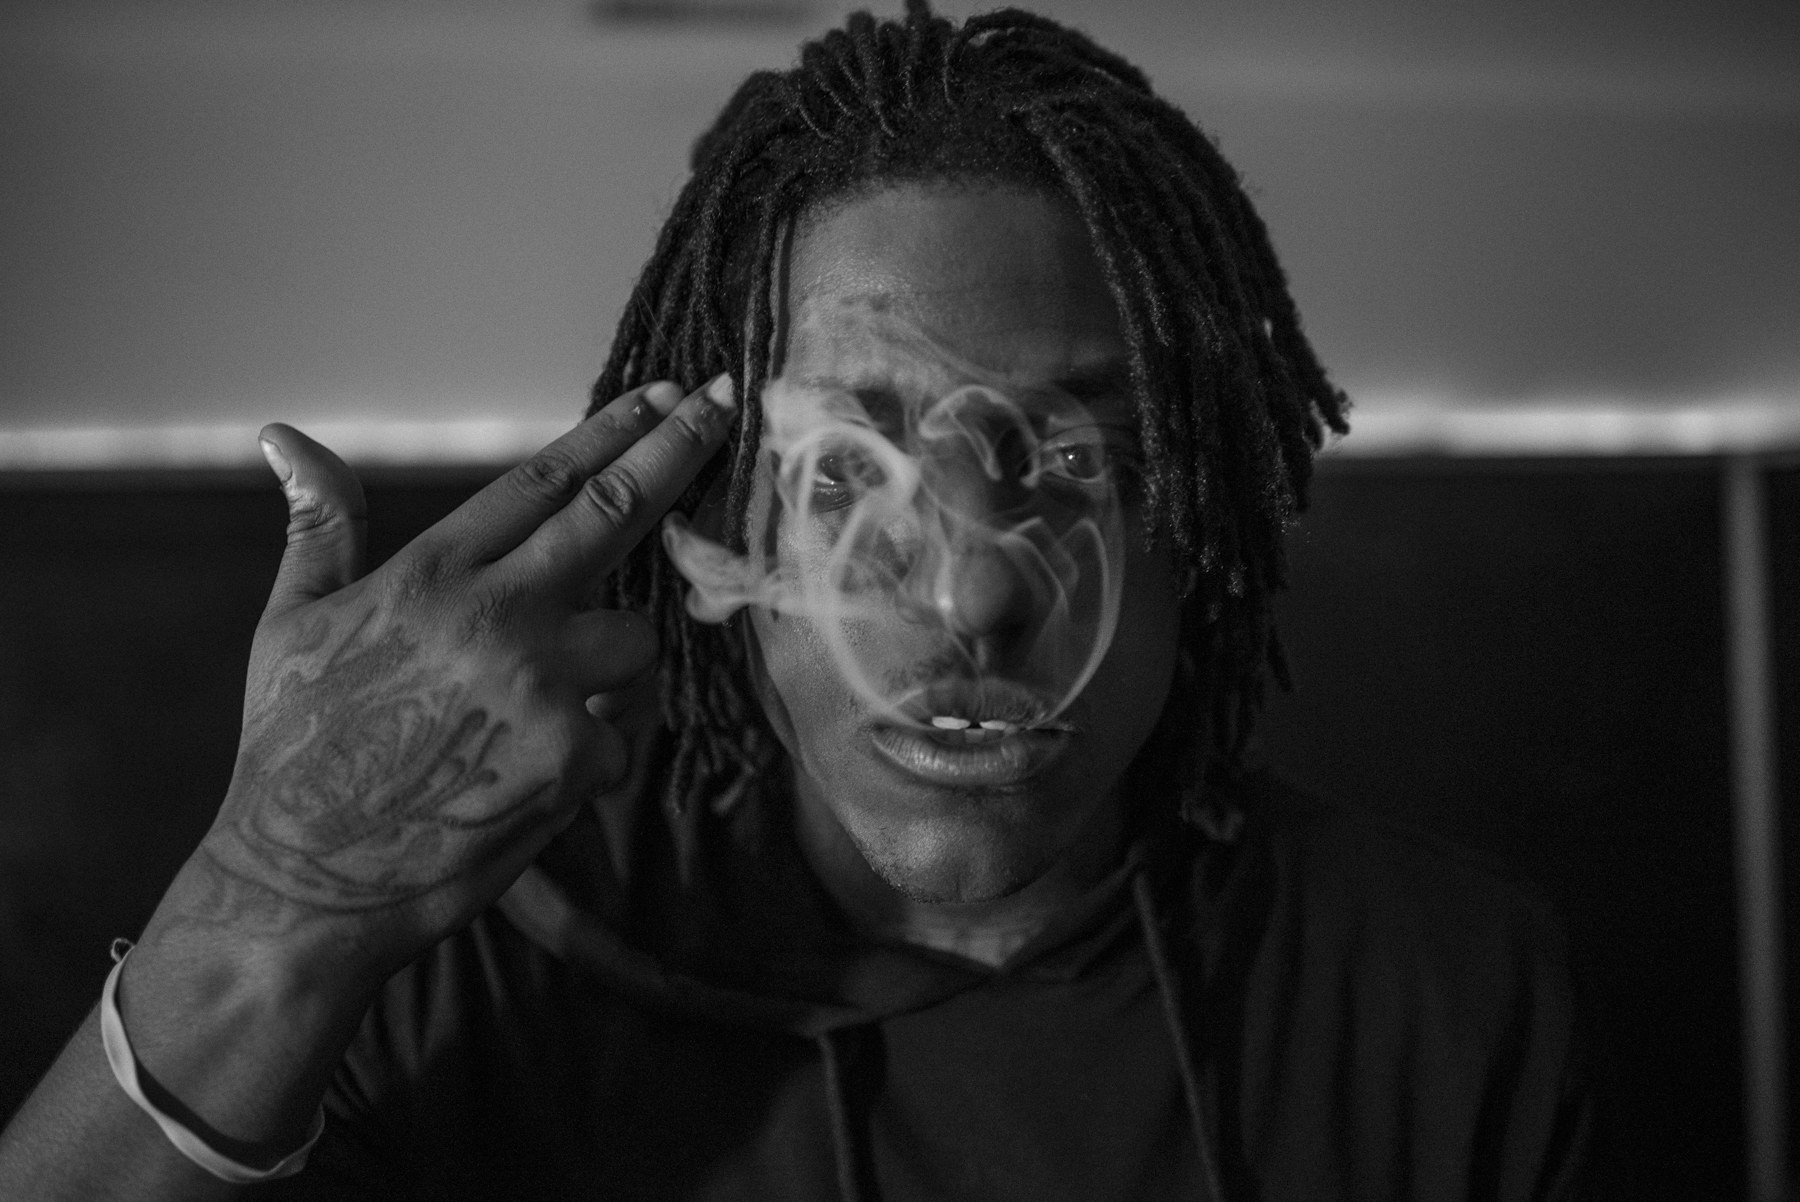 USA, Illinois, Chicago, 22 September 2016